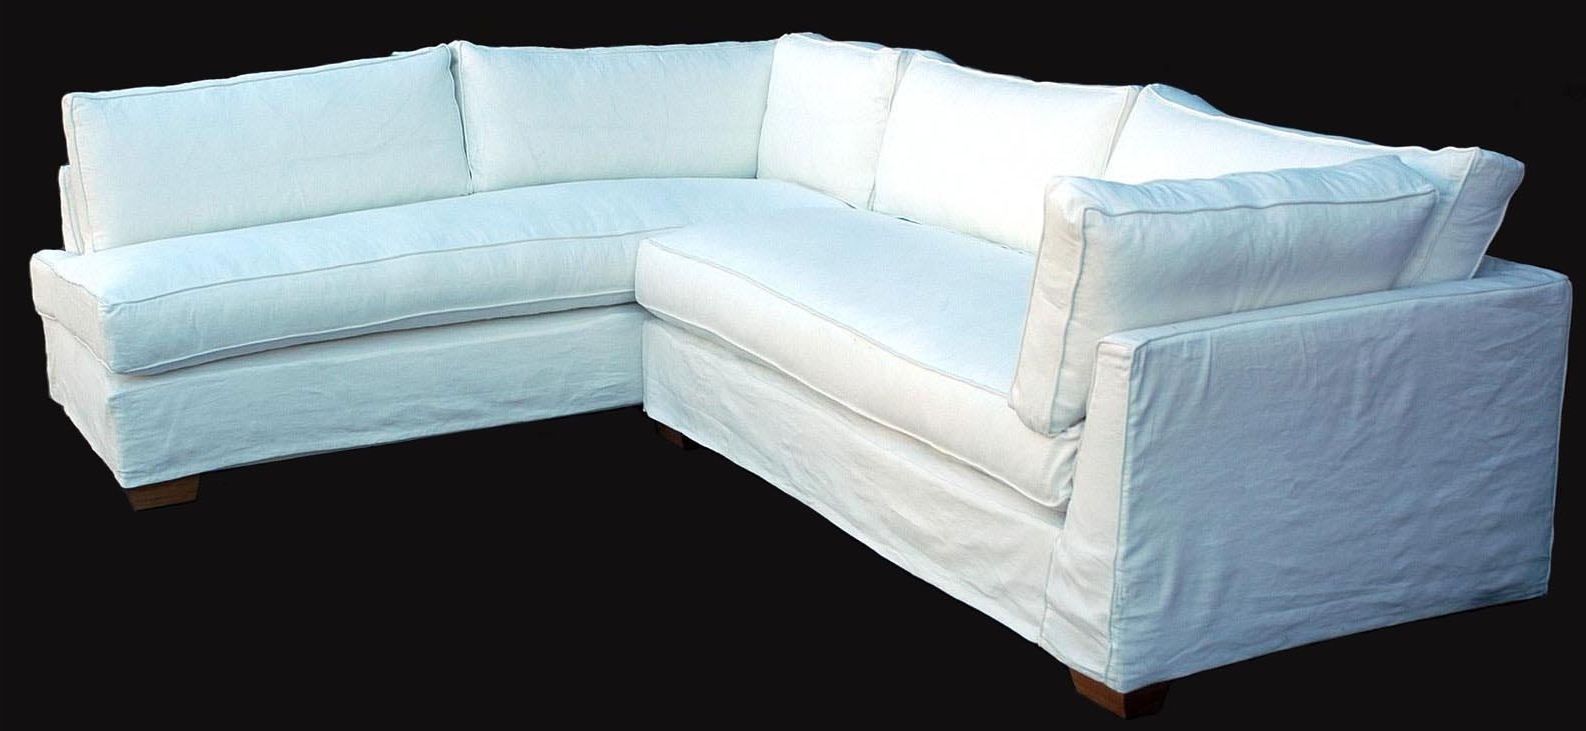 Widely Used Luxury Slipcover Sectional Sofa 83 For Your Modern Sofa Ideas With Throughout Slipcovered Sofas With Chaise (View 15 of 15)